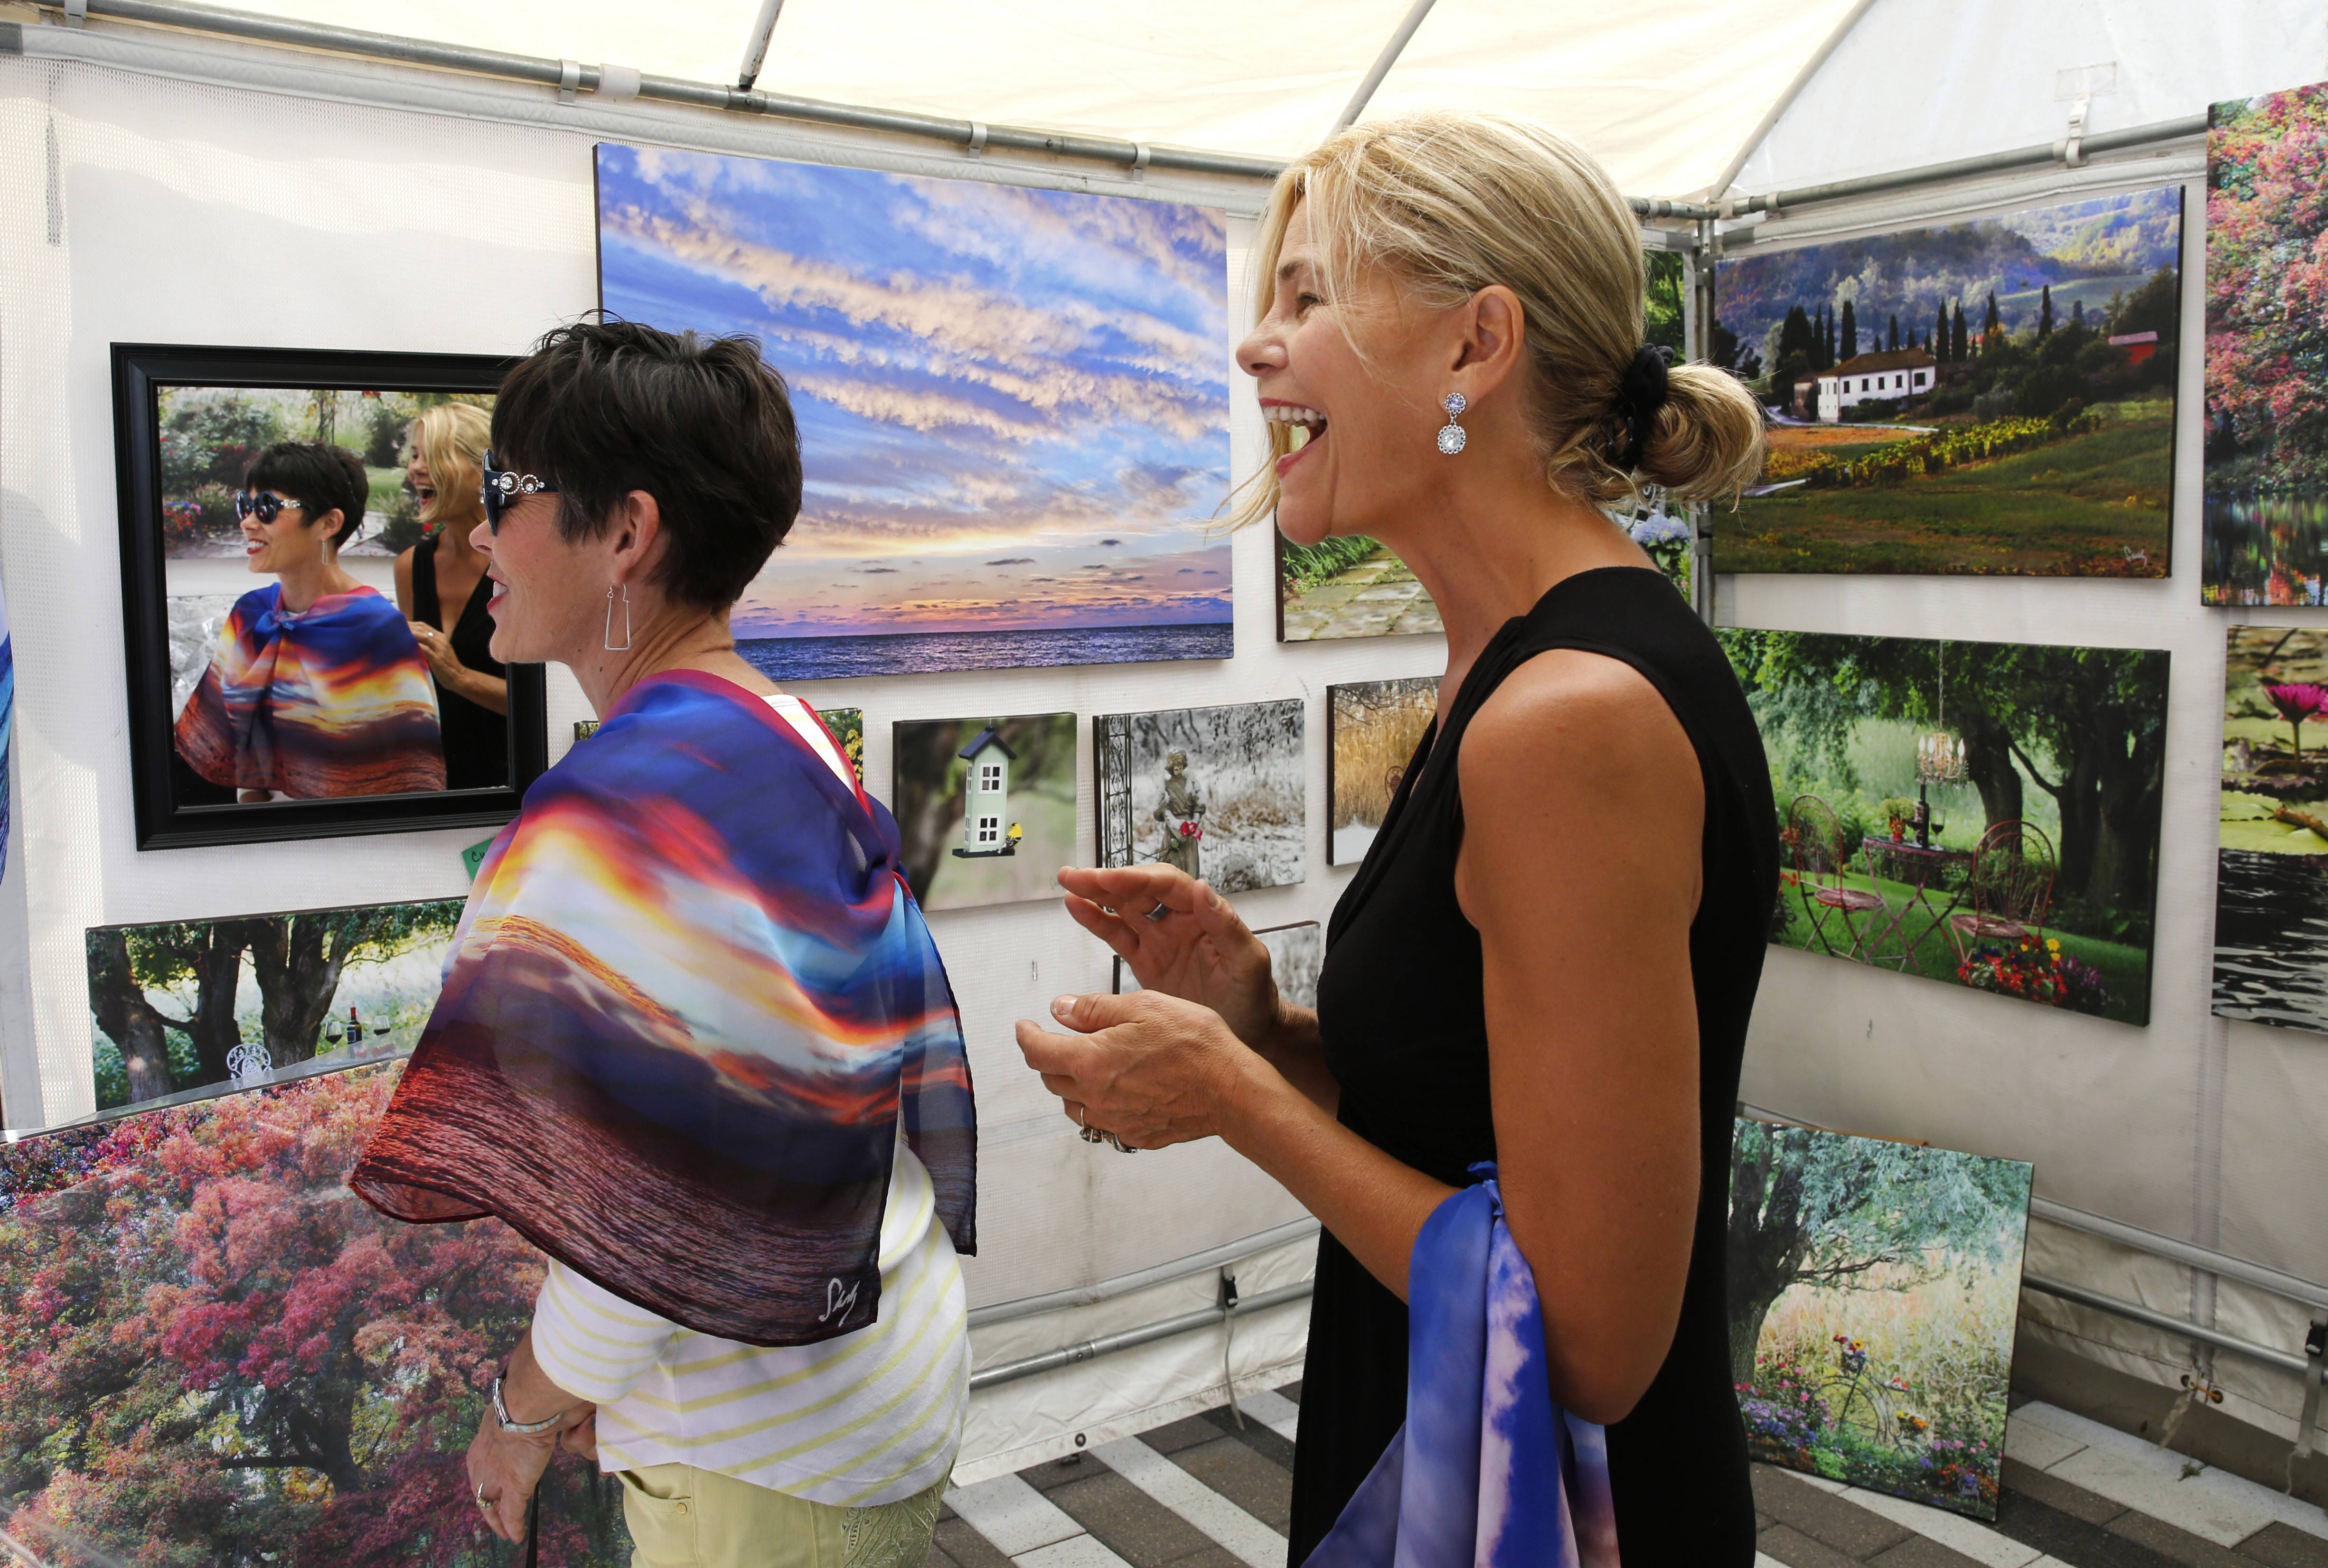 Photographer Shelly Lawler of Hoffman Estates, right, sells photos on canvas and also has begun transferring her landscape images to scarves and other wearable art. She'll be among about 70 artists at the Fine Art Festival at Oakbrook Center.